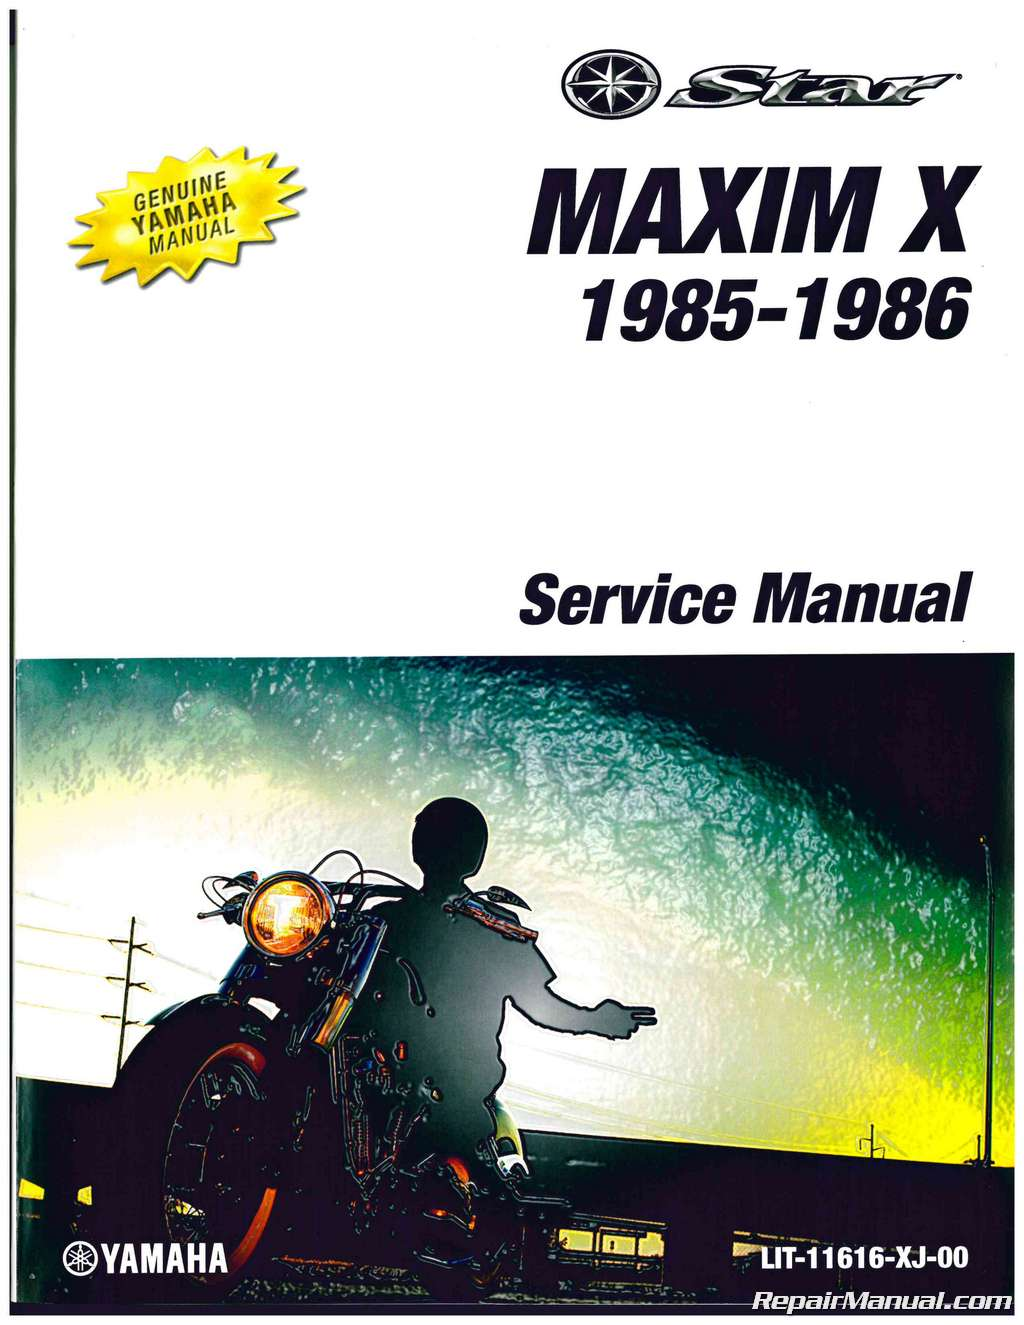 Yamaha Breeze Manual Lx210 Wiring Diagram Array 1985 1986 Xj700x Maxim X Motorcycle Service Rh Repairmanual